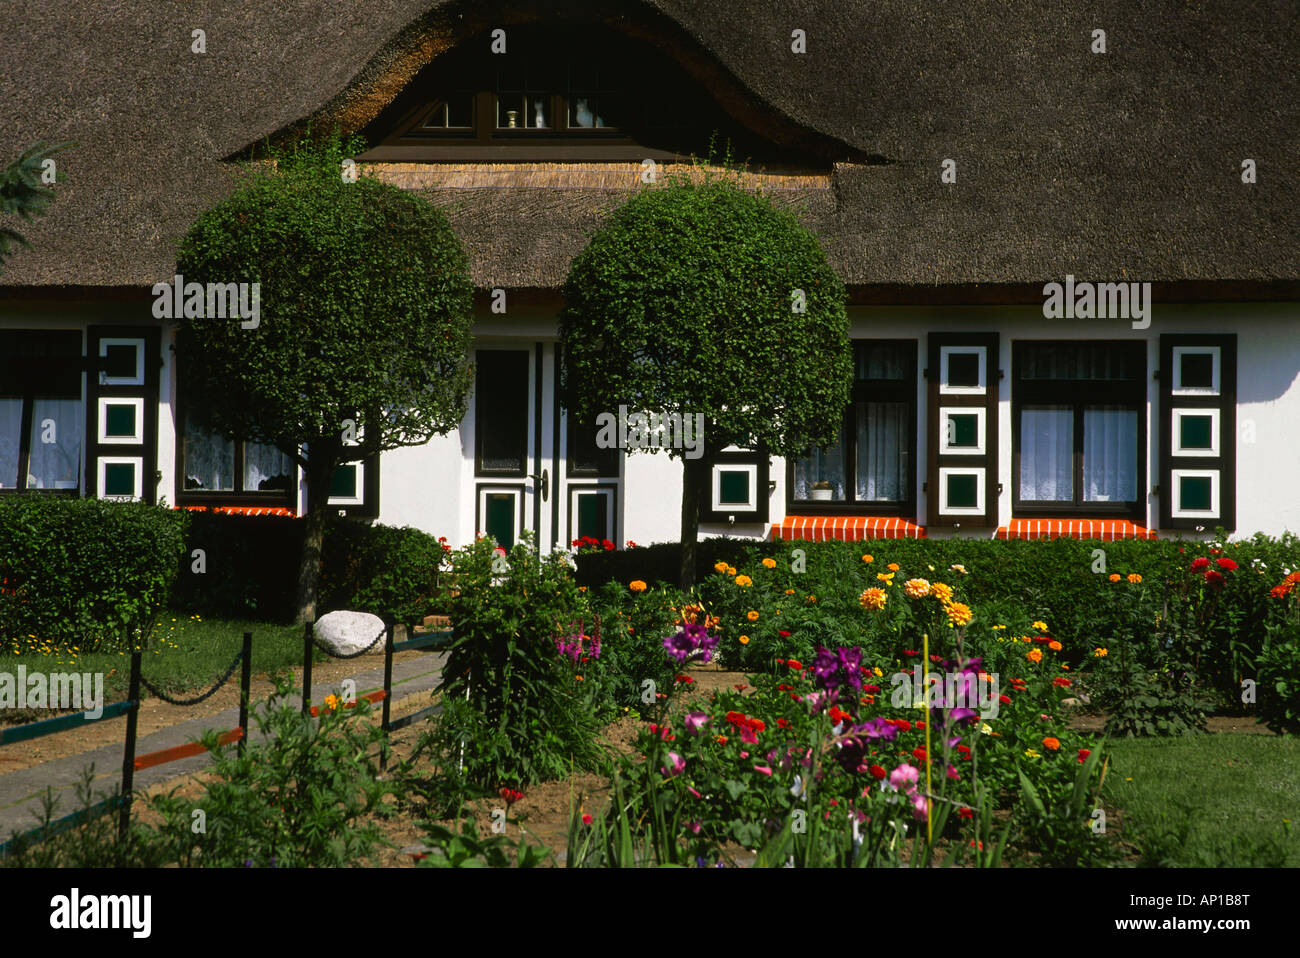 House with typical roof in Wiek, Darss, Mecklenburg-Western Pomerania, Germany - Stock Image